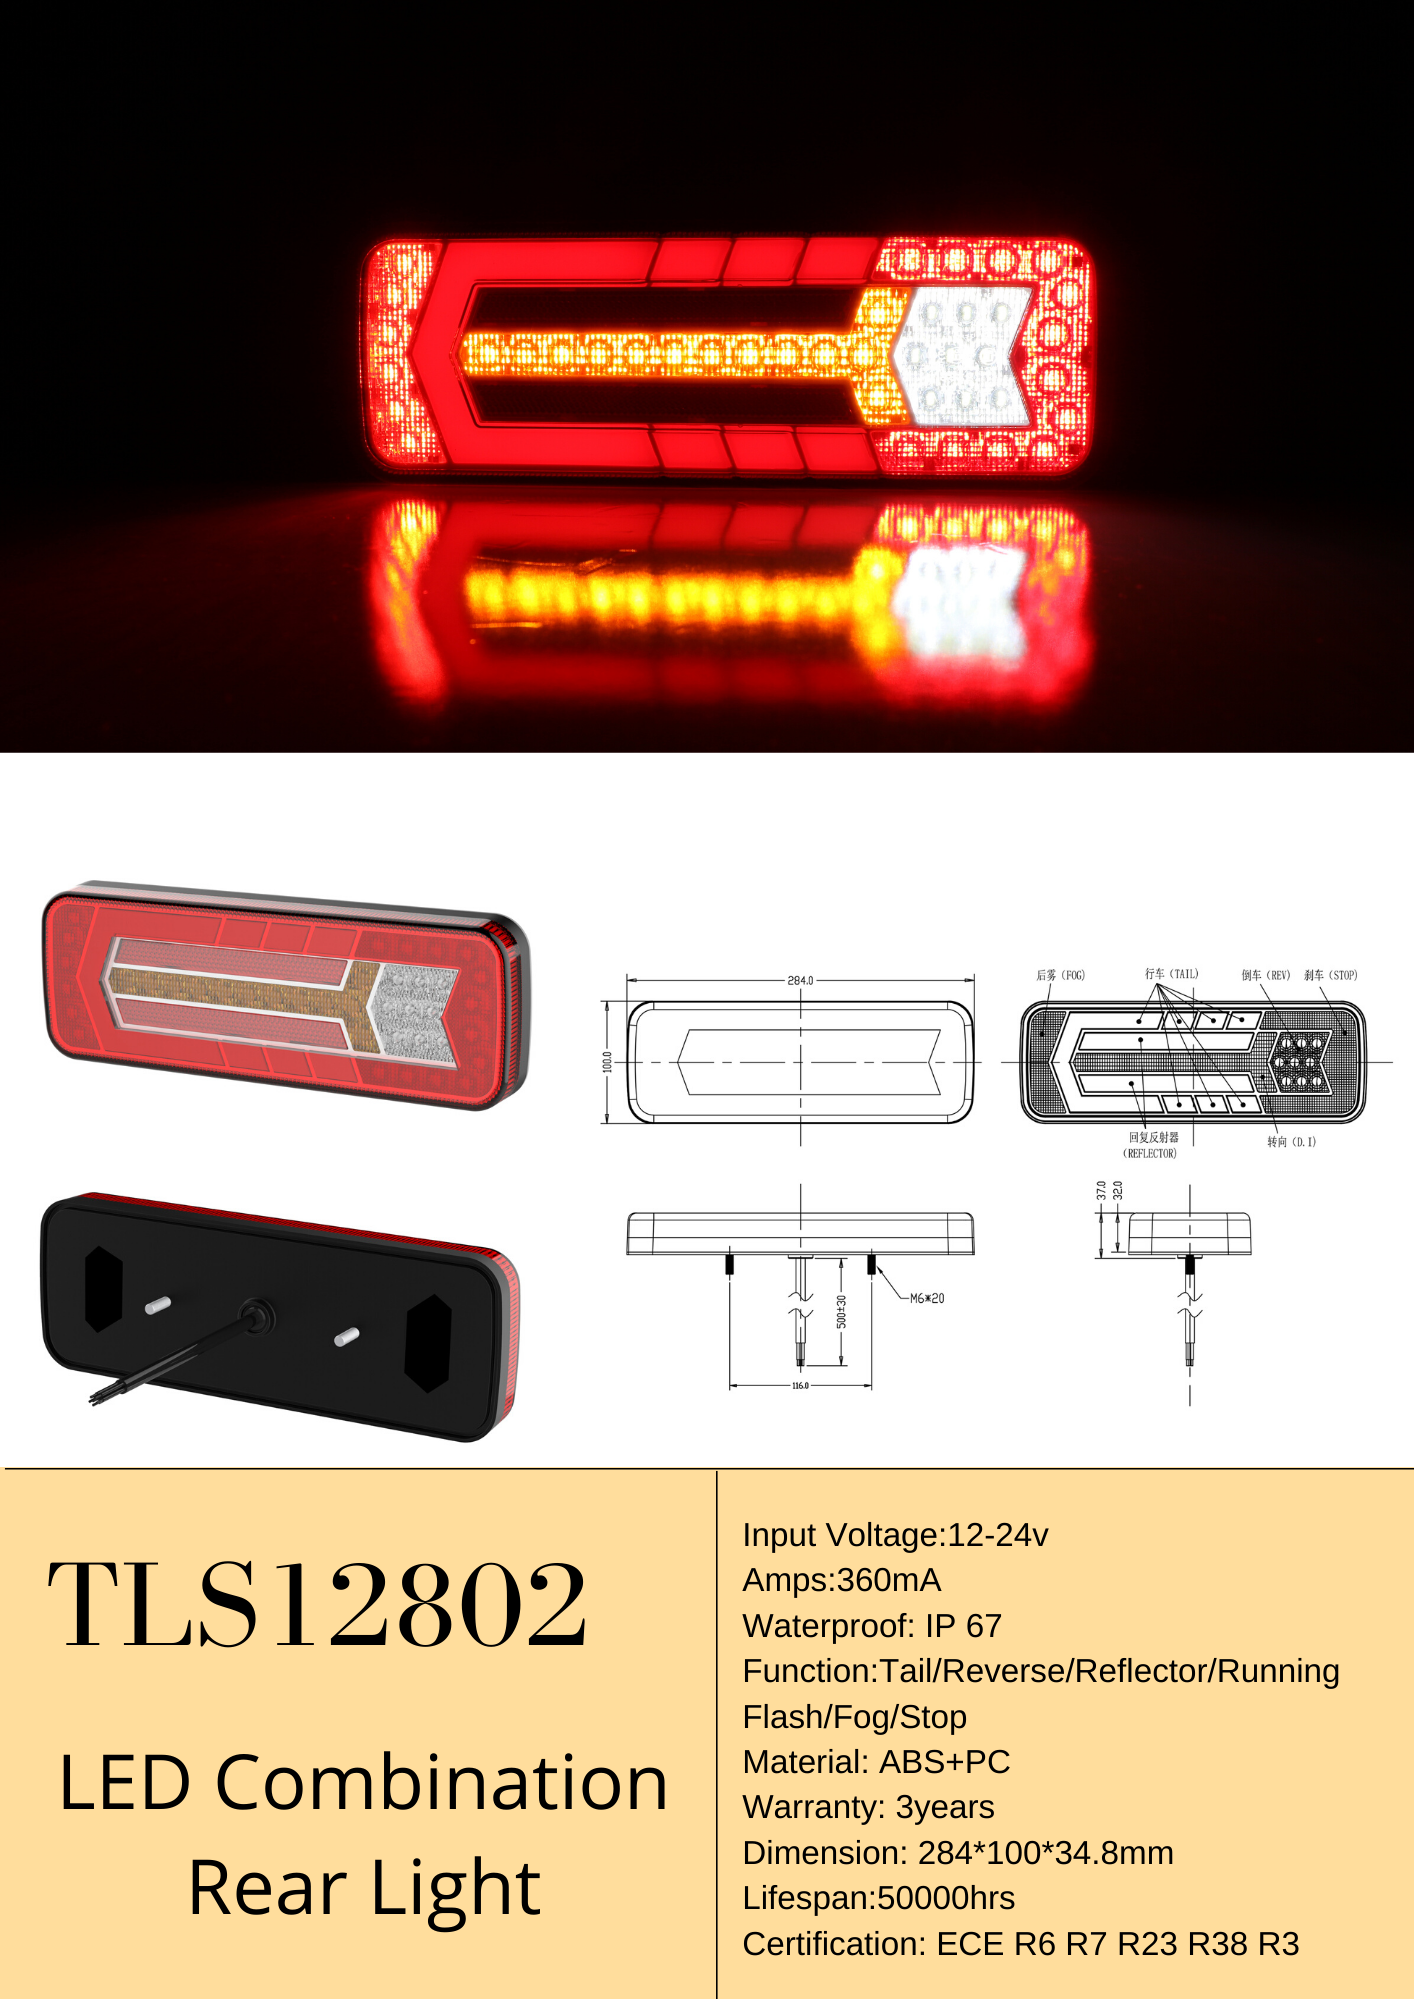 Tail lights for trucks IP67  with R3,R7,R38 for truck/fog/lamp/stop light combination rear light